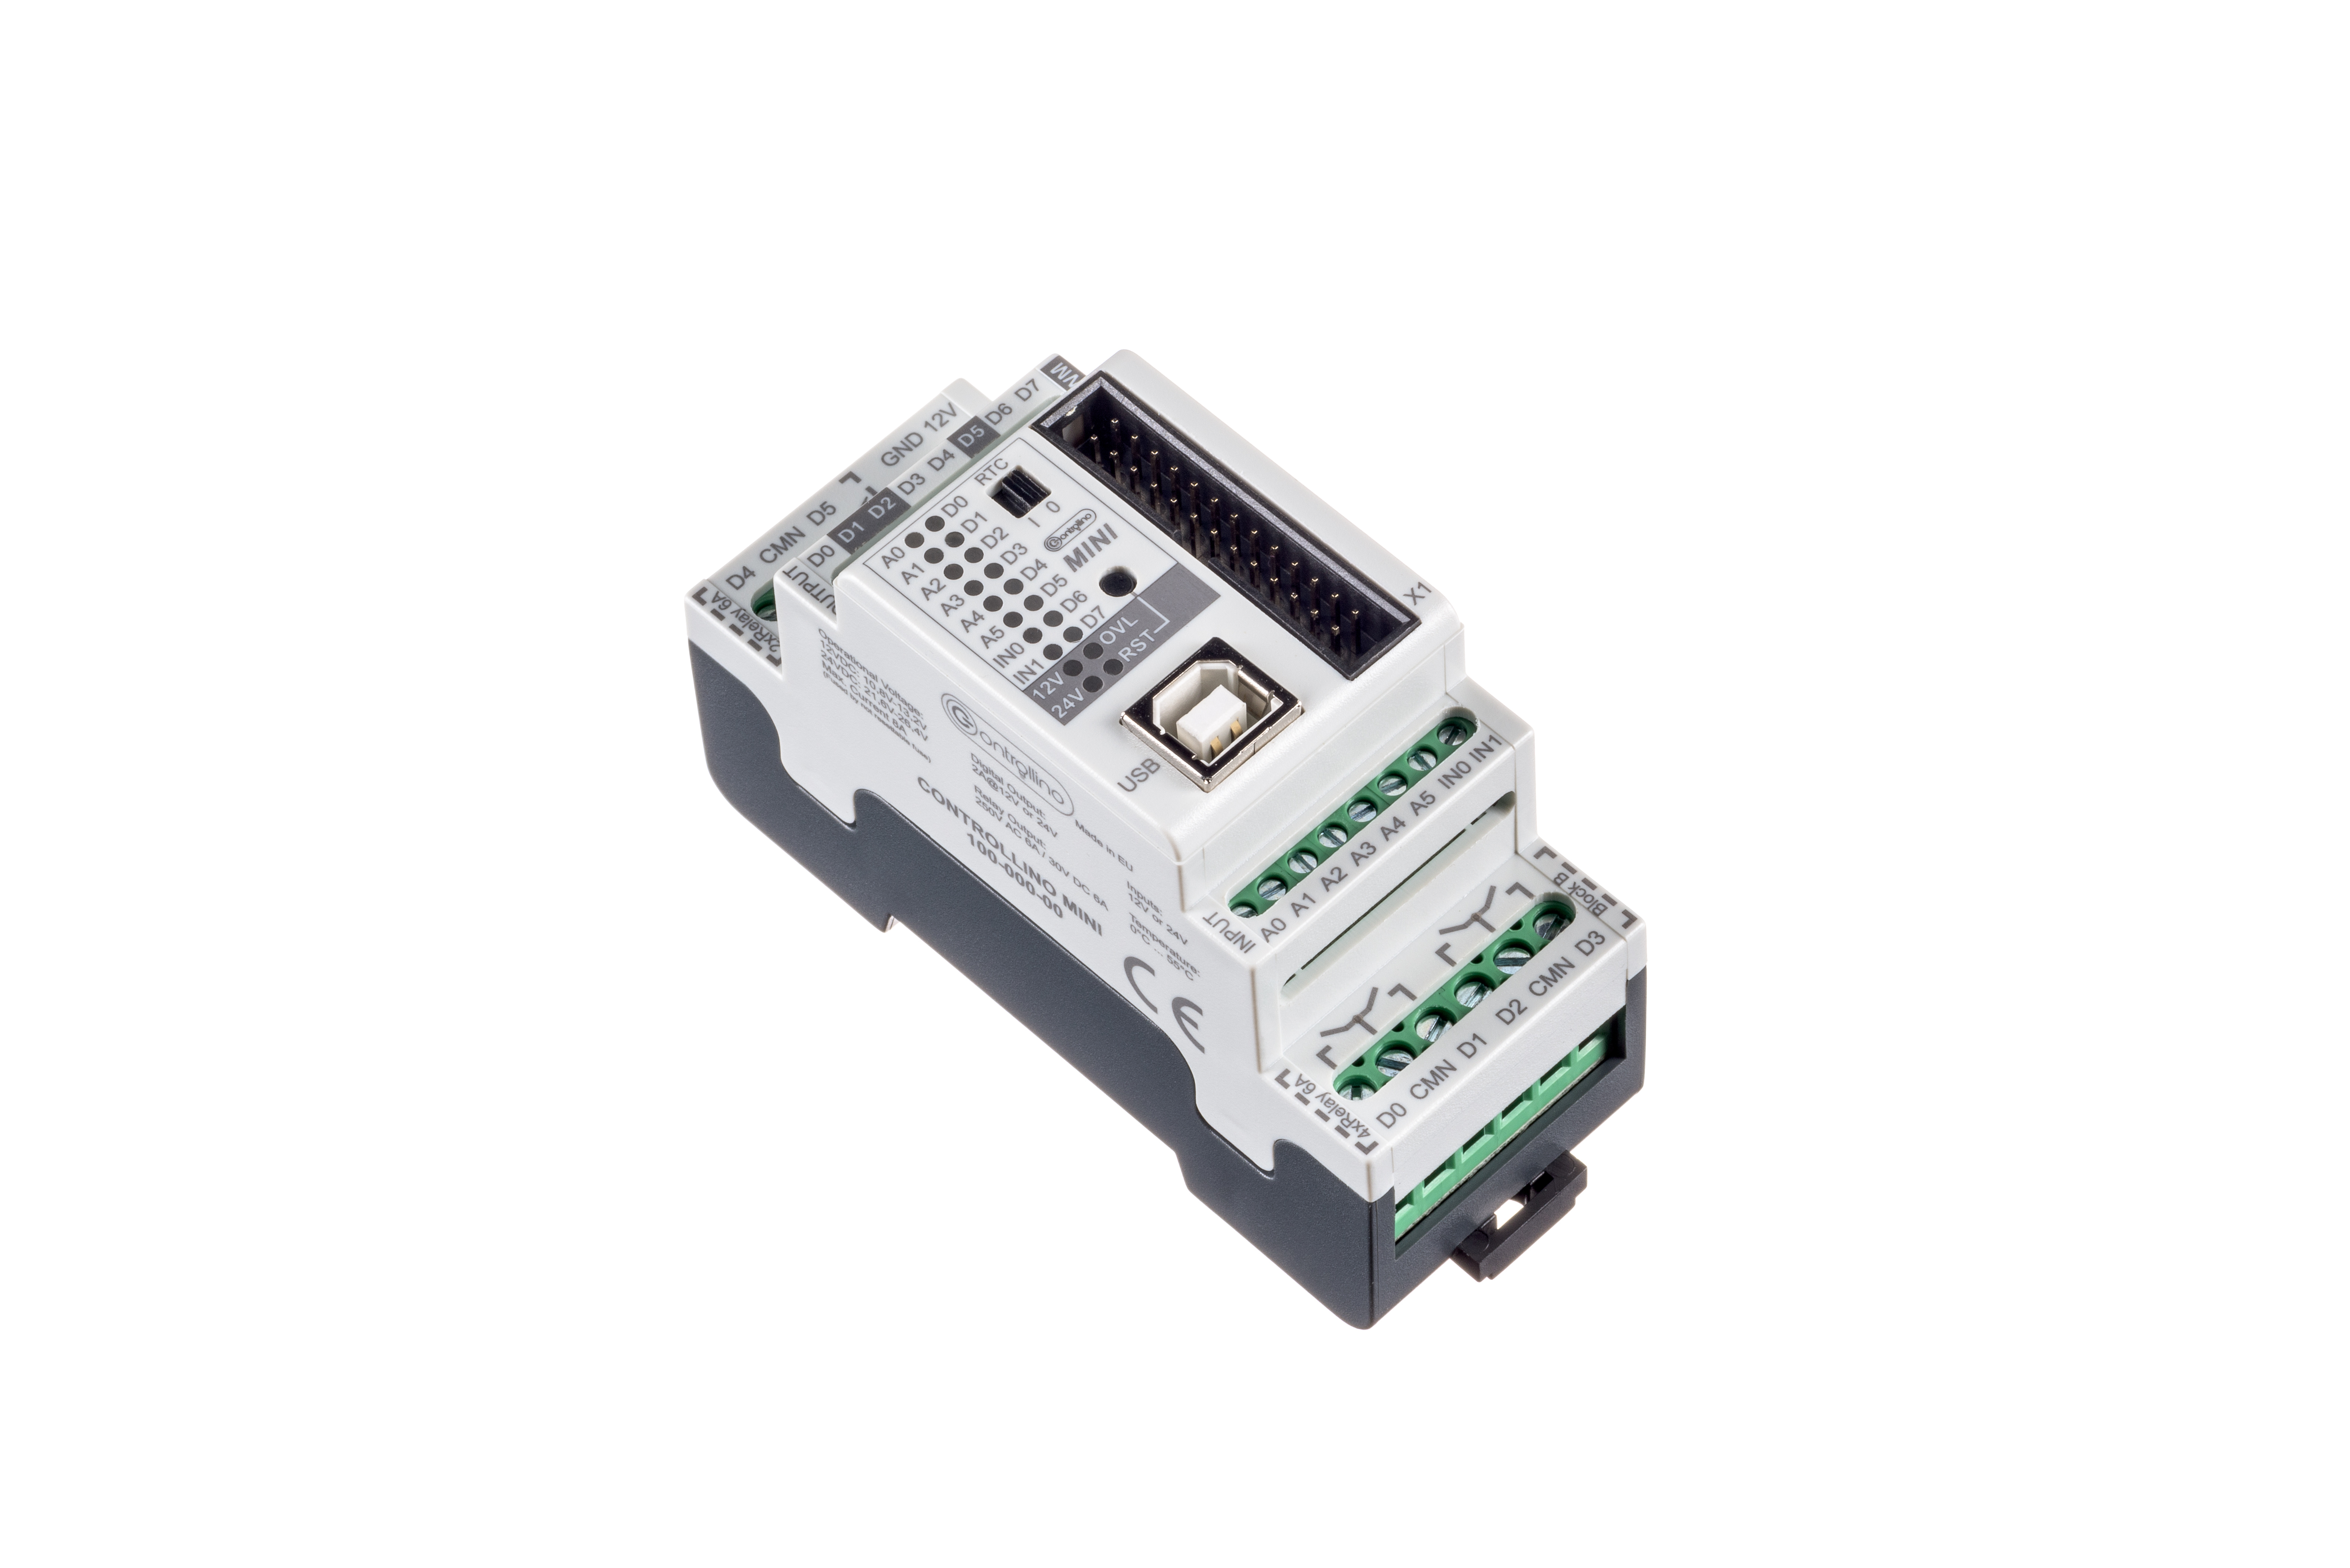 Learning Controllino Ac Series Circuit Further Control And Data Acquisition Interface Mini